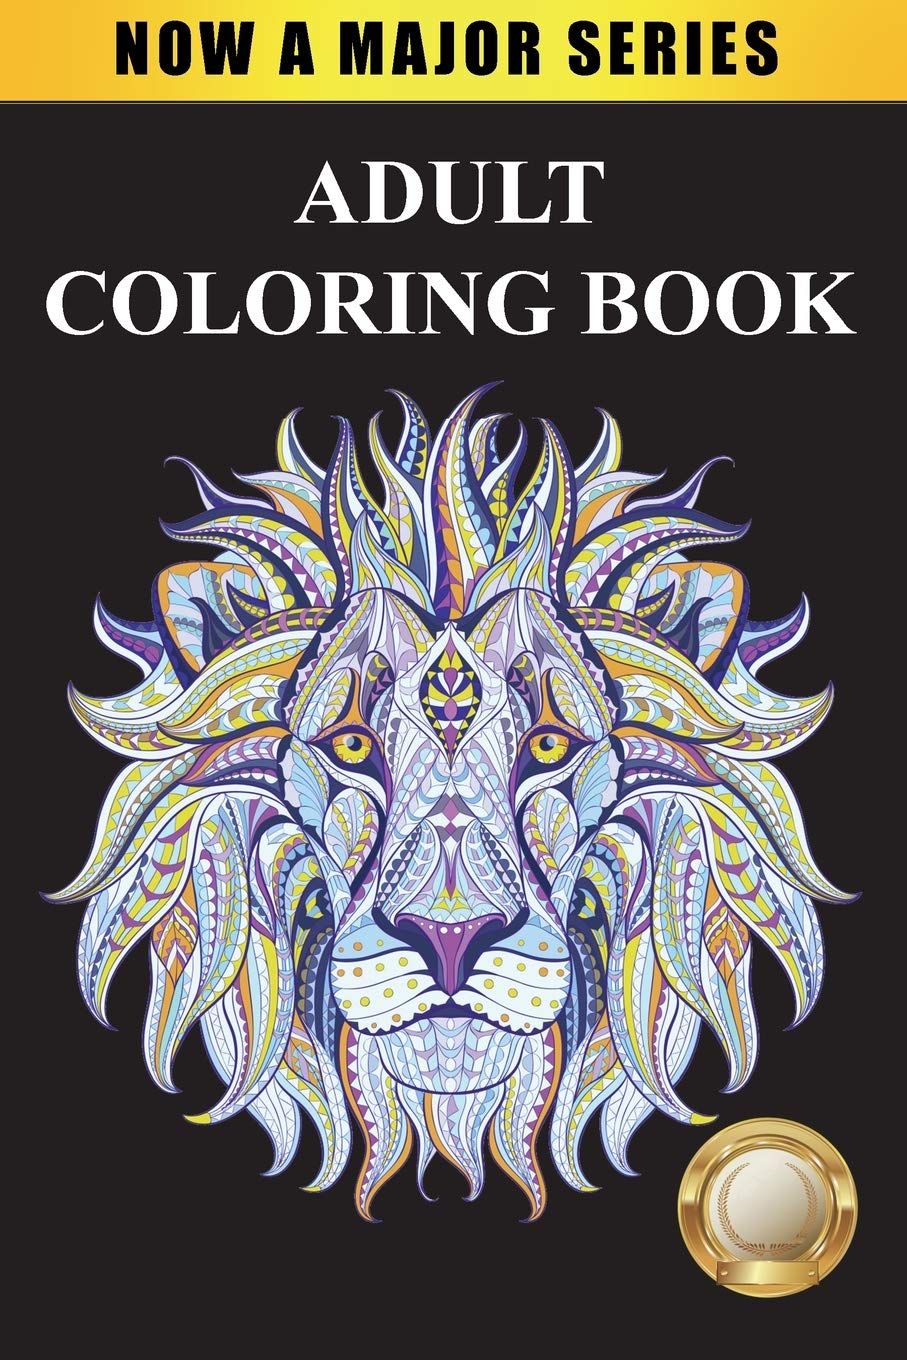 Adult Coloring Book: Largest Collection of Stress Relieving Patterns Inspirational Quotes, Mandalas, Paisley Patterns, Animals, Butterflies, Flowers, ... for Adult Relaxations, Mandalas, Paisley Pat